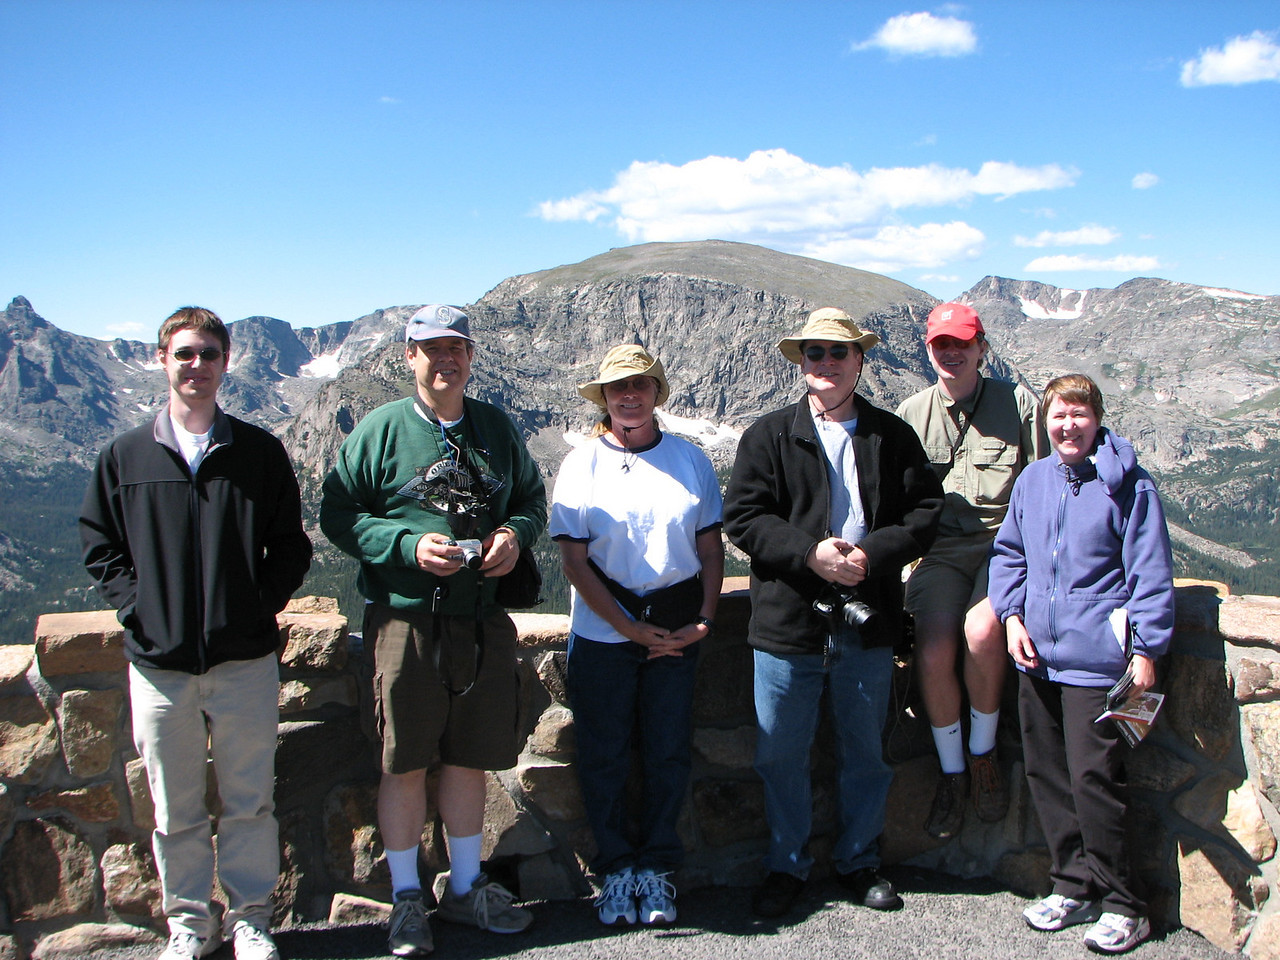 (L to R) Kevin, Martin, Connie, Richard, Nathan, Mary.  Forest Canyon Overlook on Trail Ridge Road, Rocky Mountain National Park.